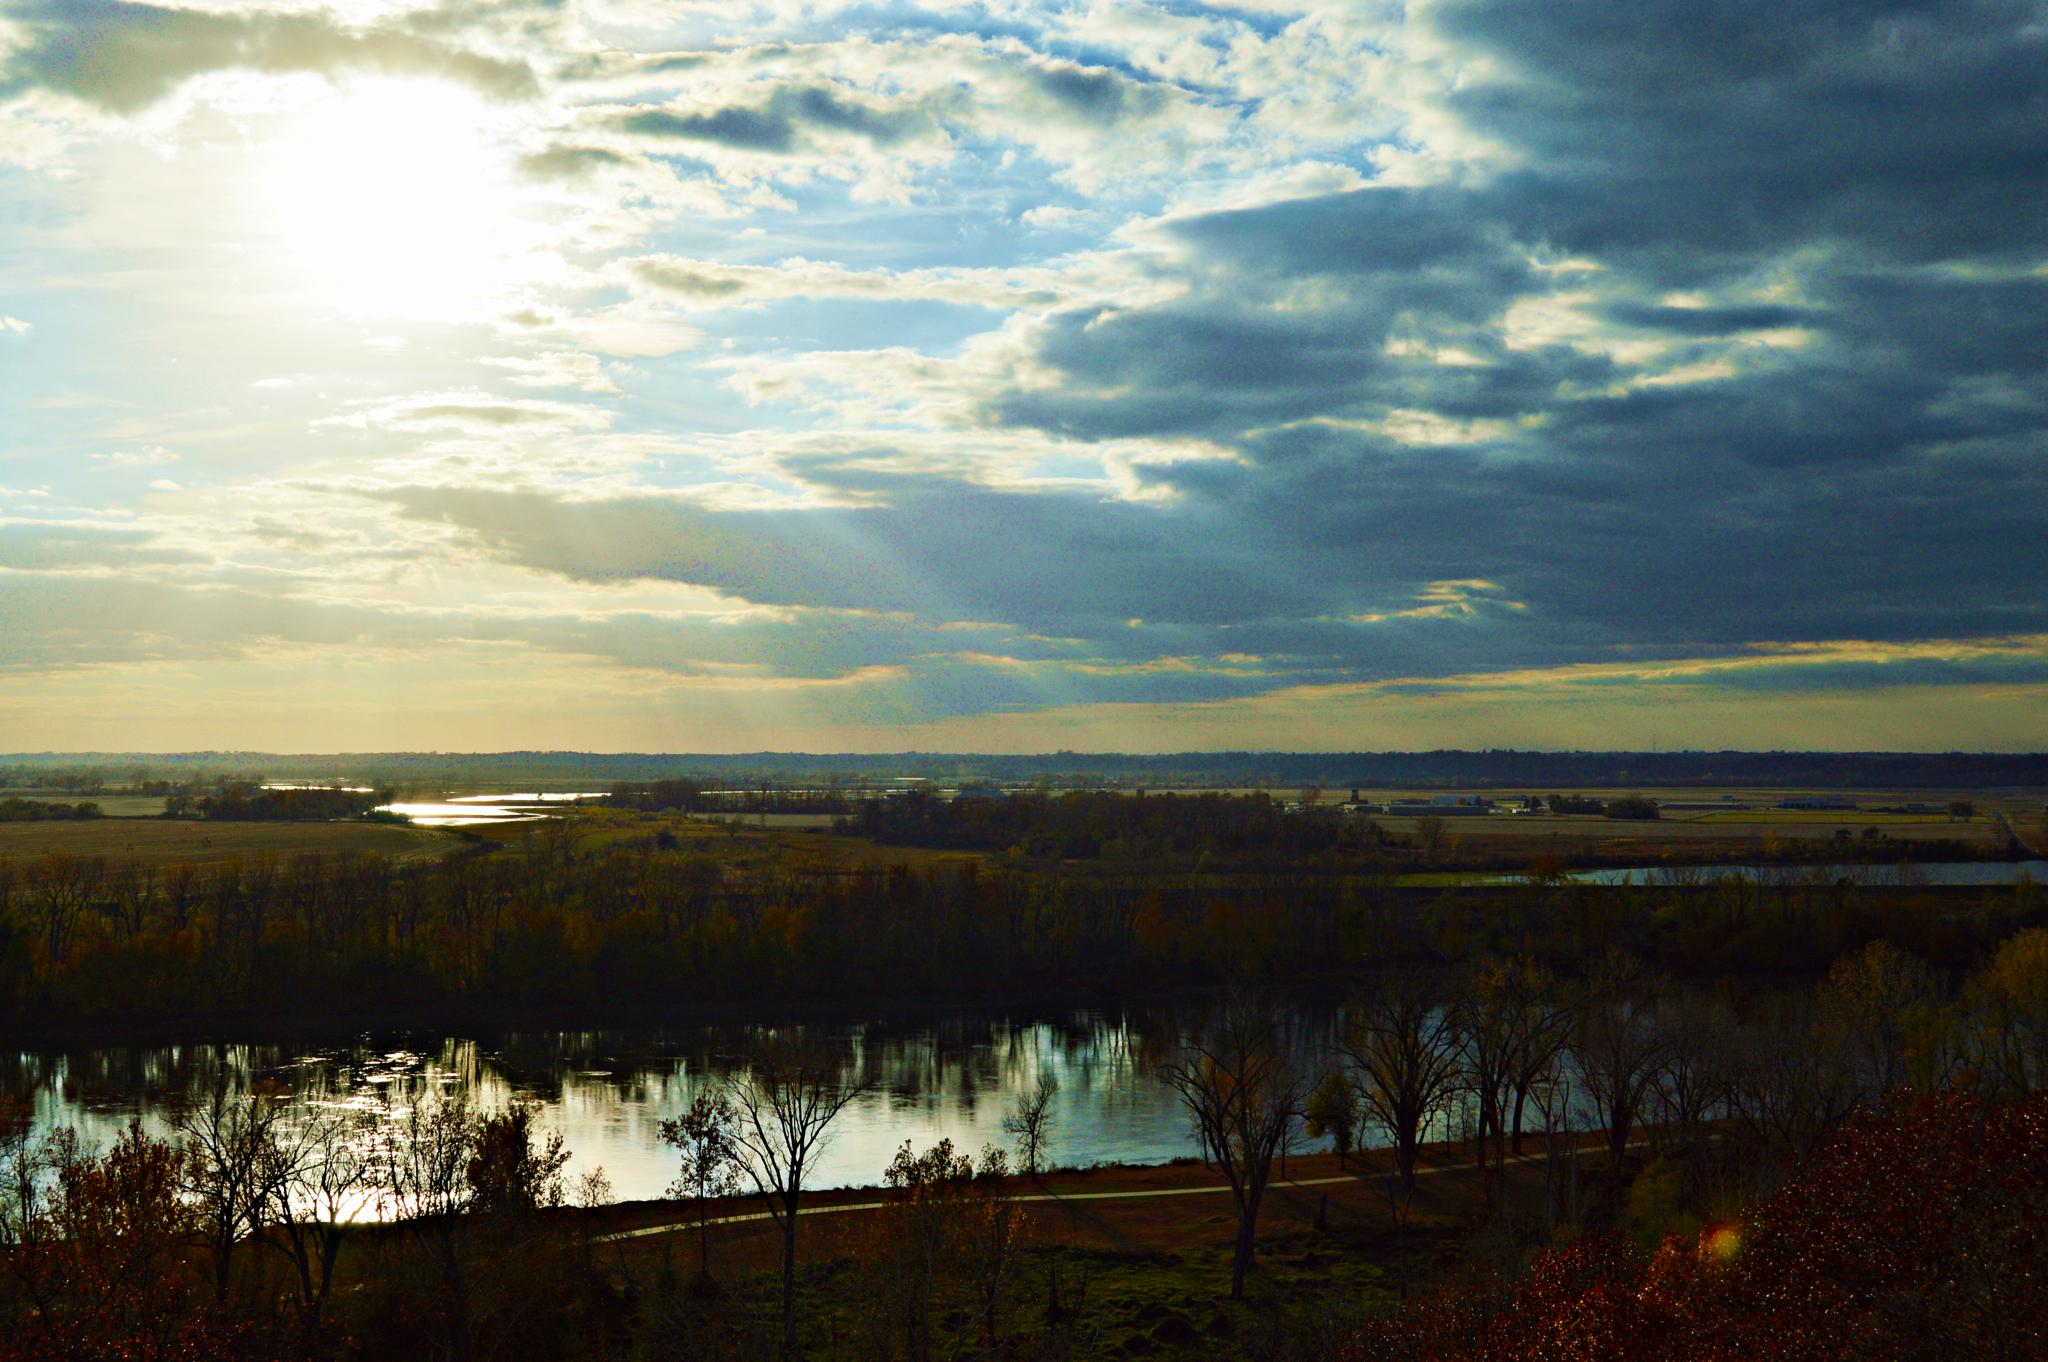 The View from Wyeth Hill by Nemo